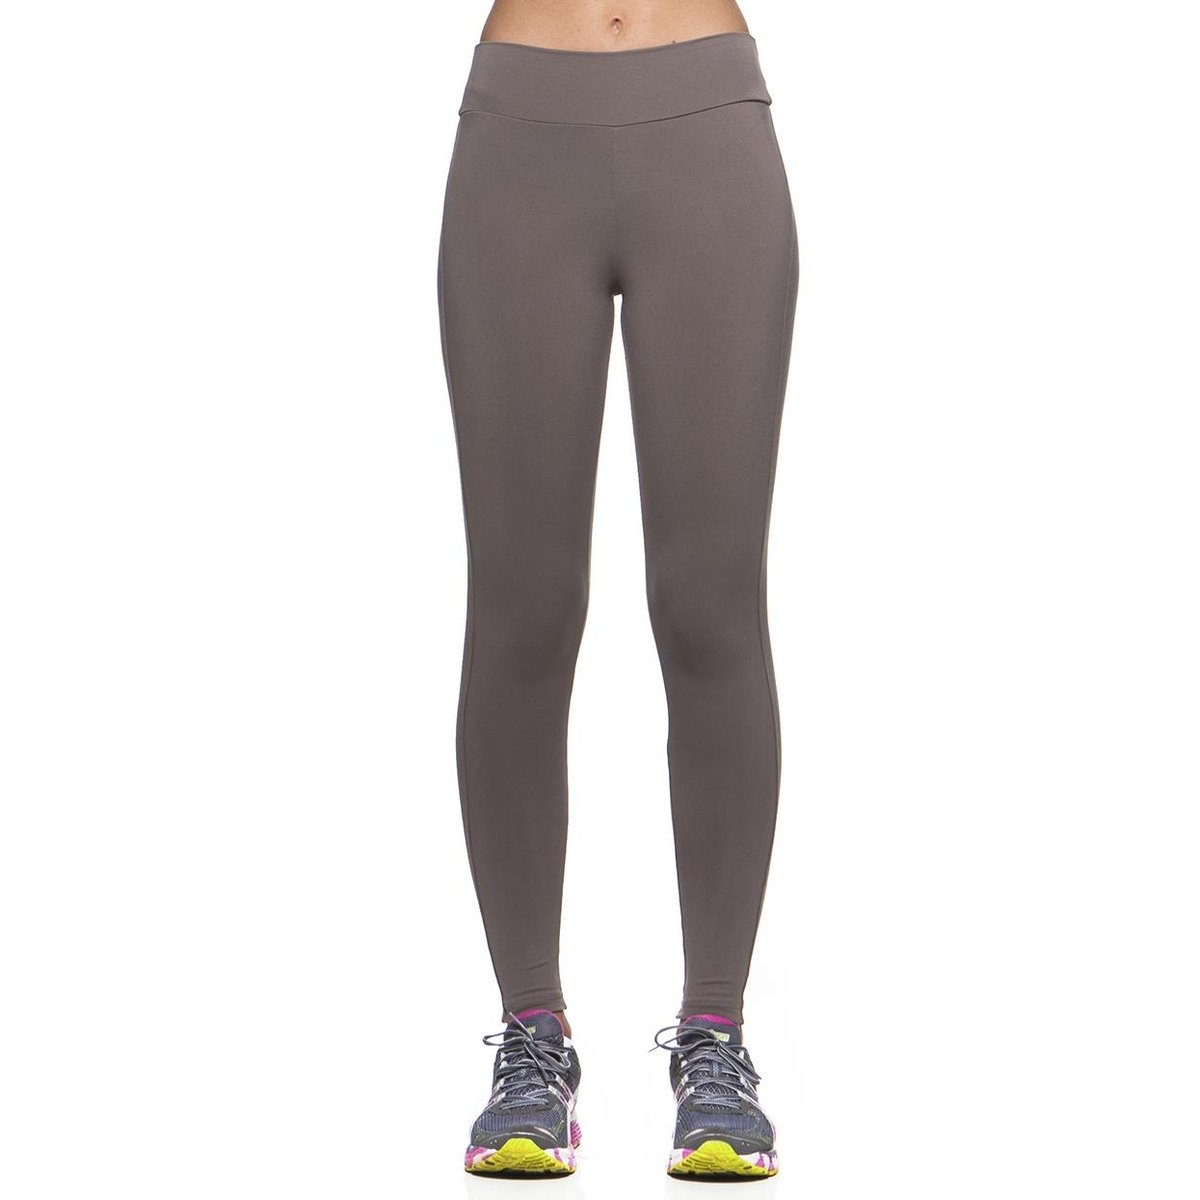 Claro Supplex Claro Legging Marrom Legging Karen Supplex Marrom Fitness Fitness Legging Karen pwHdqxzd7